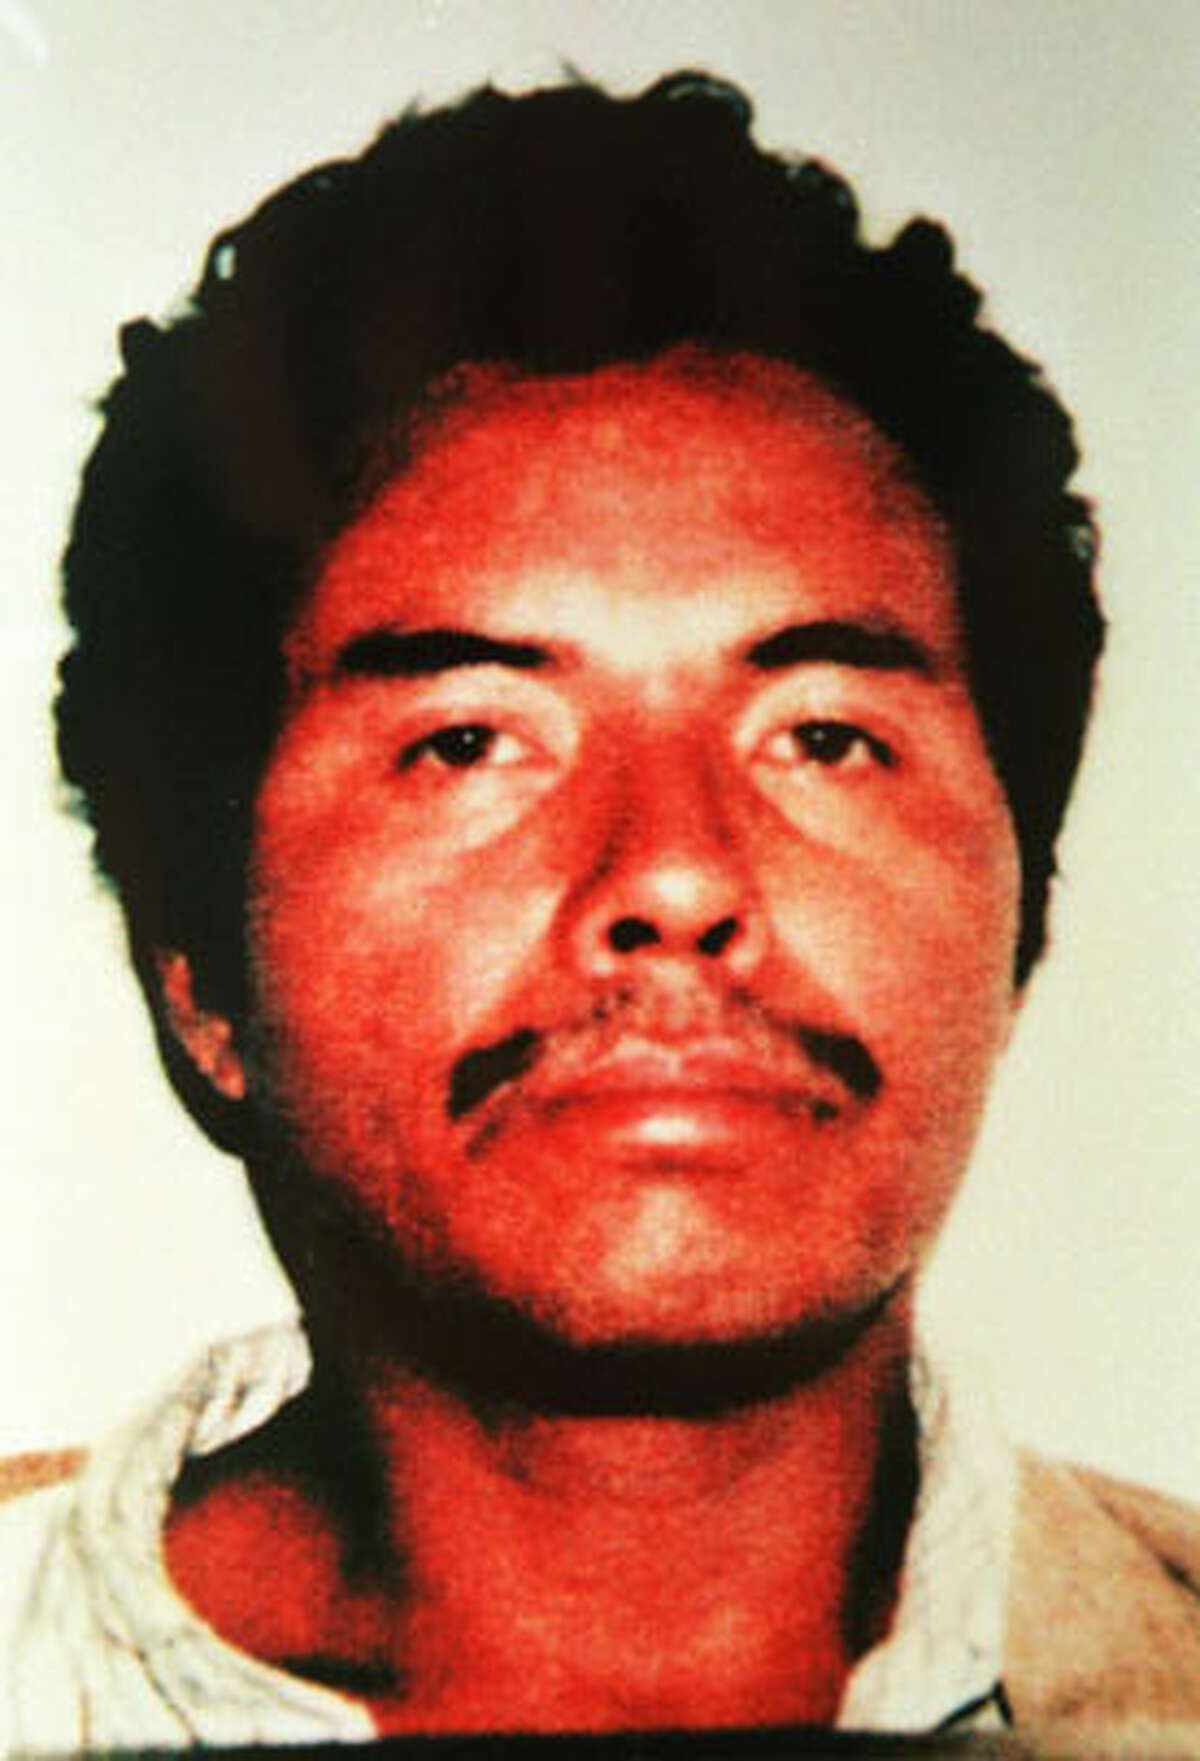 Name: Angel Maturino Resendiz Alias: The Railcar KillerCrime: Investigators believe Resendiz was responsible for the deaths of 15 people across the U.S. and Mexico during the 1990s.Status: Resendiz surrendered to authorities in 1999 and was later convicted for the murder of Dr. Claudia Benton, a resident of West University Place. He was executed in 2006.Read more: Murderer Resendiz may be linked to '86 slaying